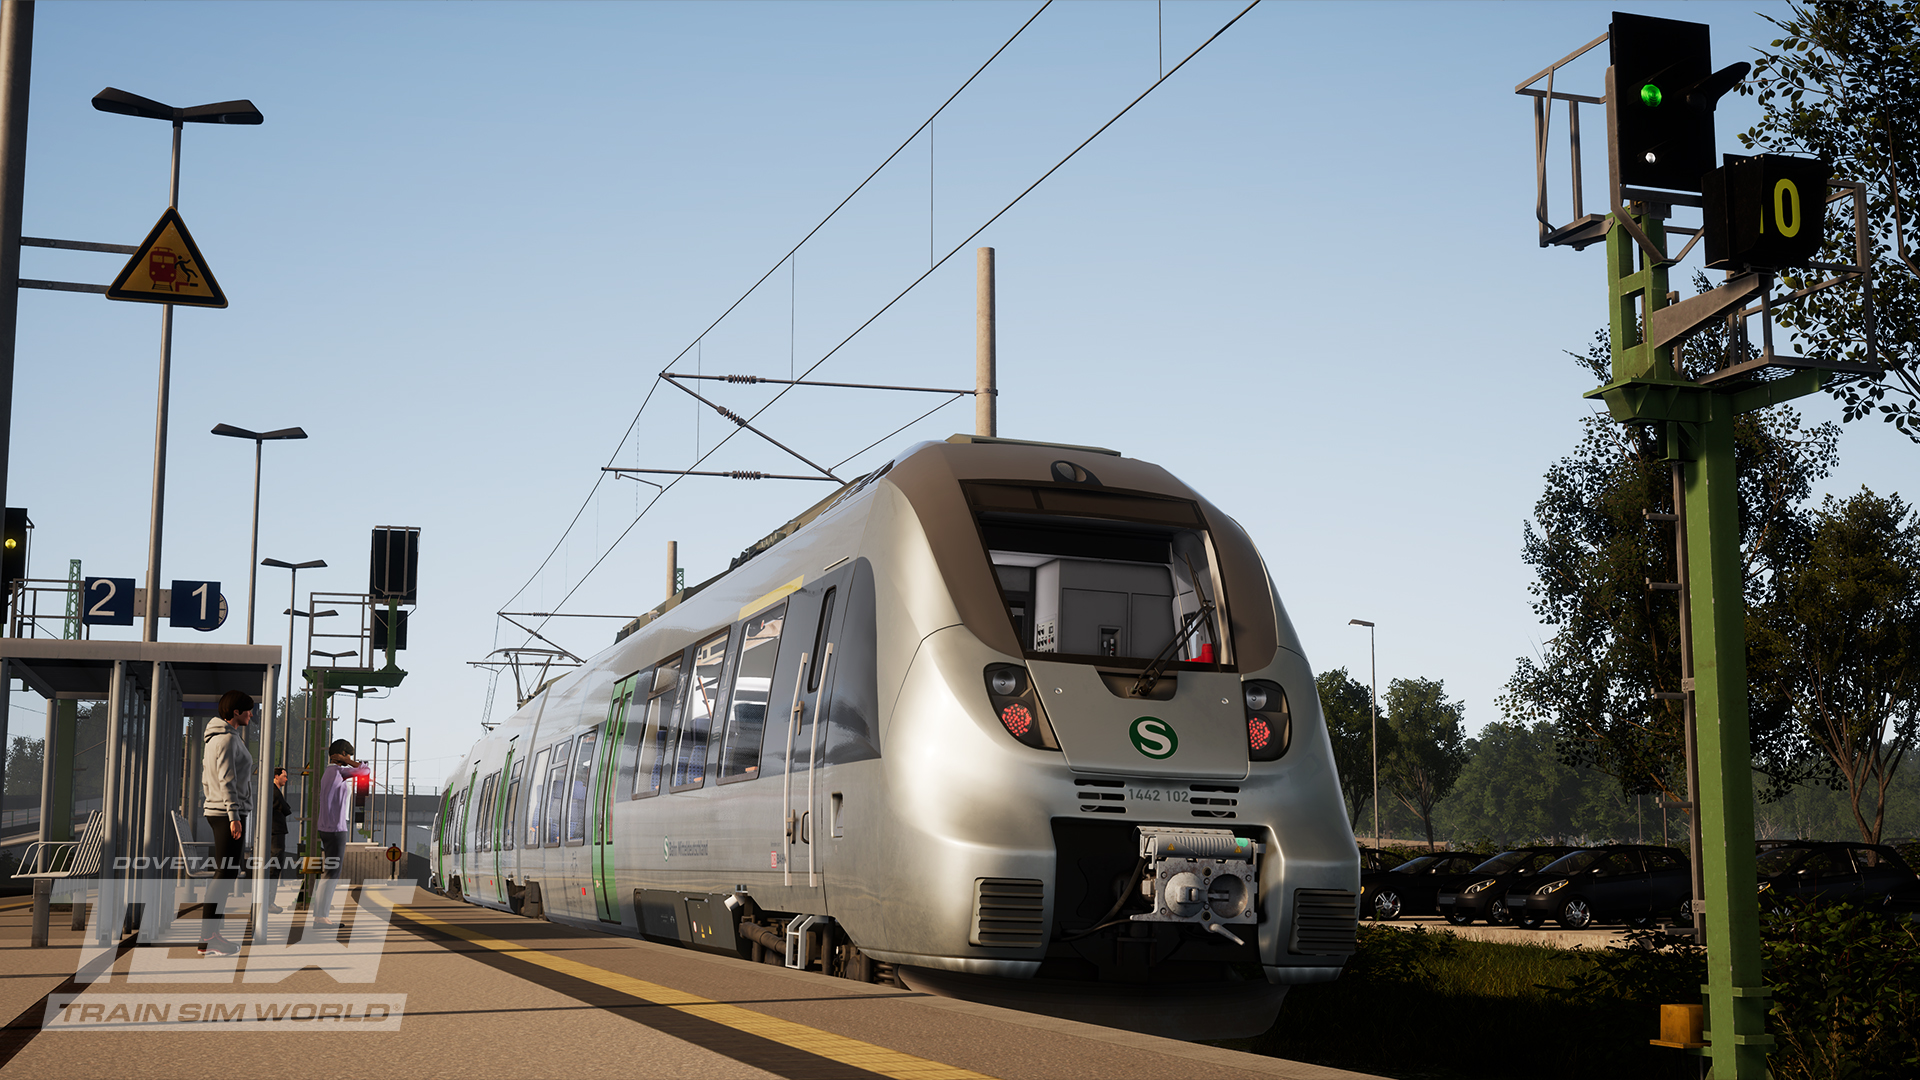 https://www.simflight.com/wp-content/uploads/2018/06/Train-Sim-World-Rapid-Transit.jpg